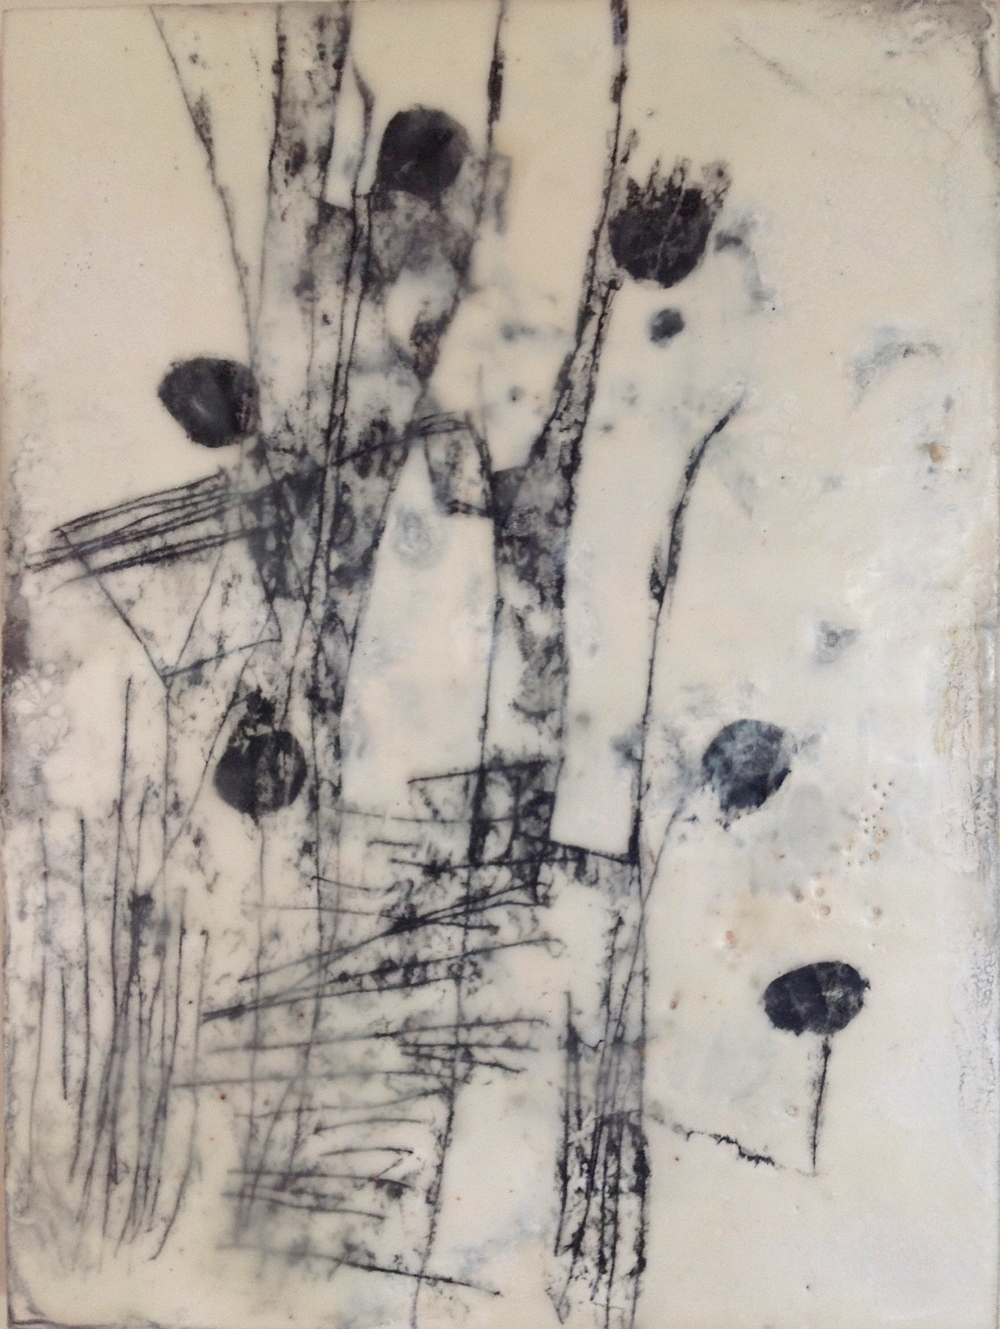 Cycles + Structures, 2012/ Encaustic on wood panel,9 x 12